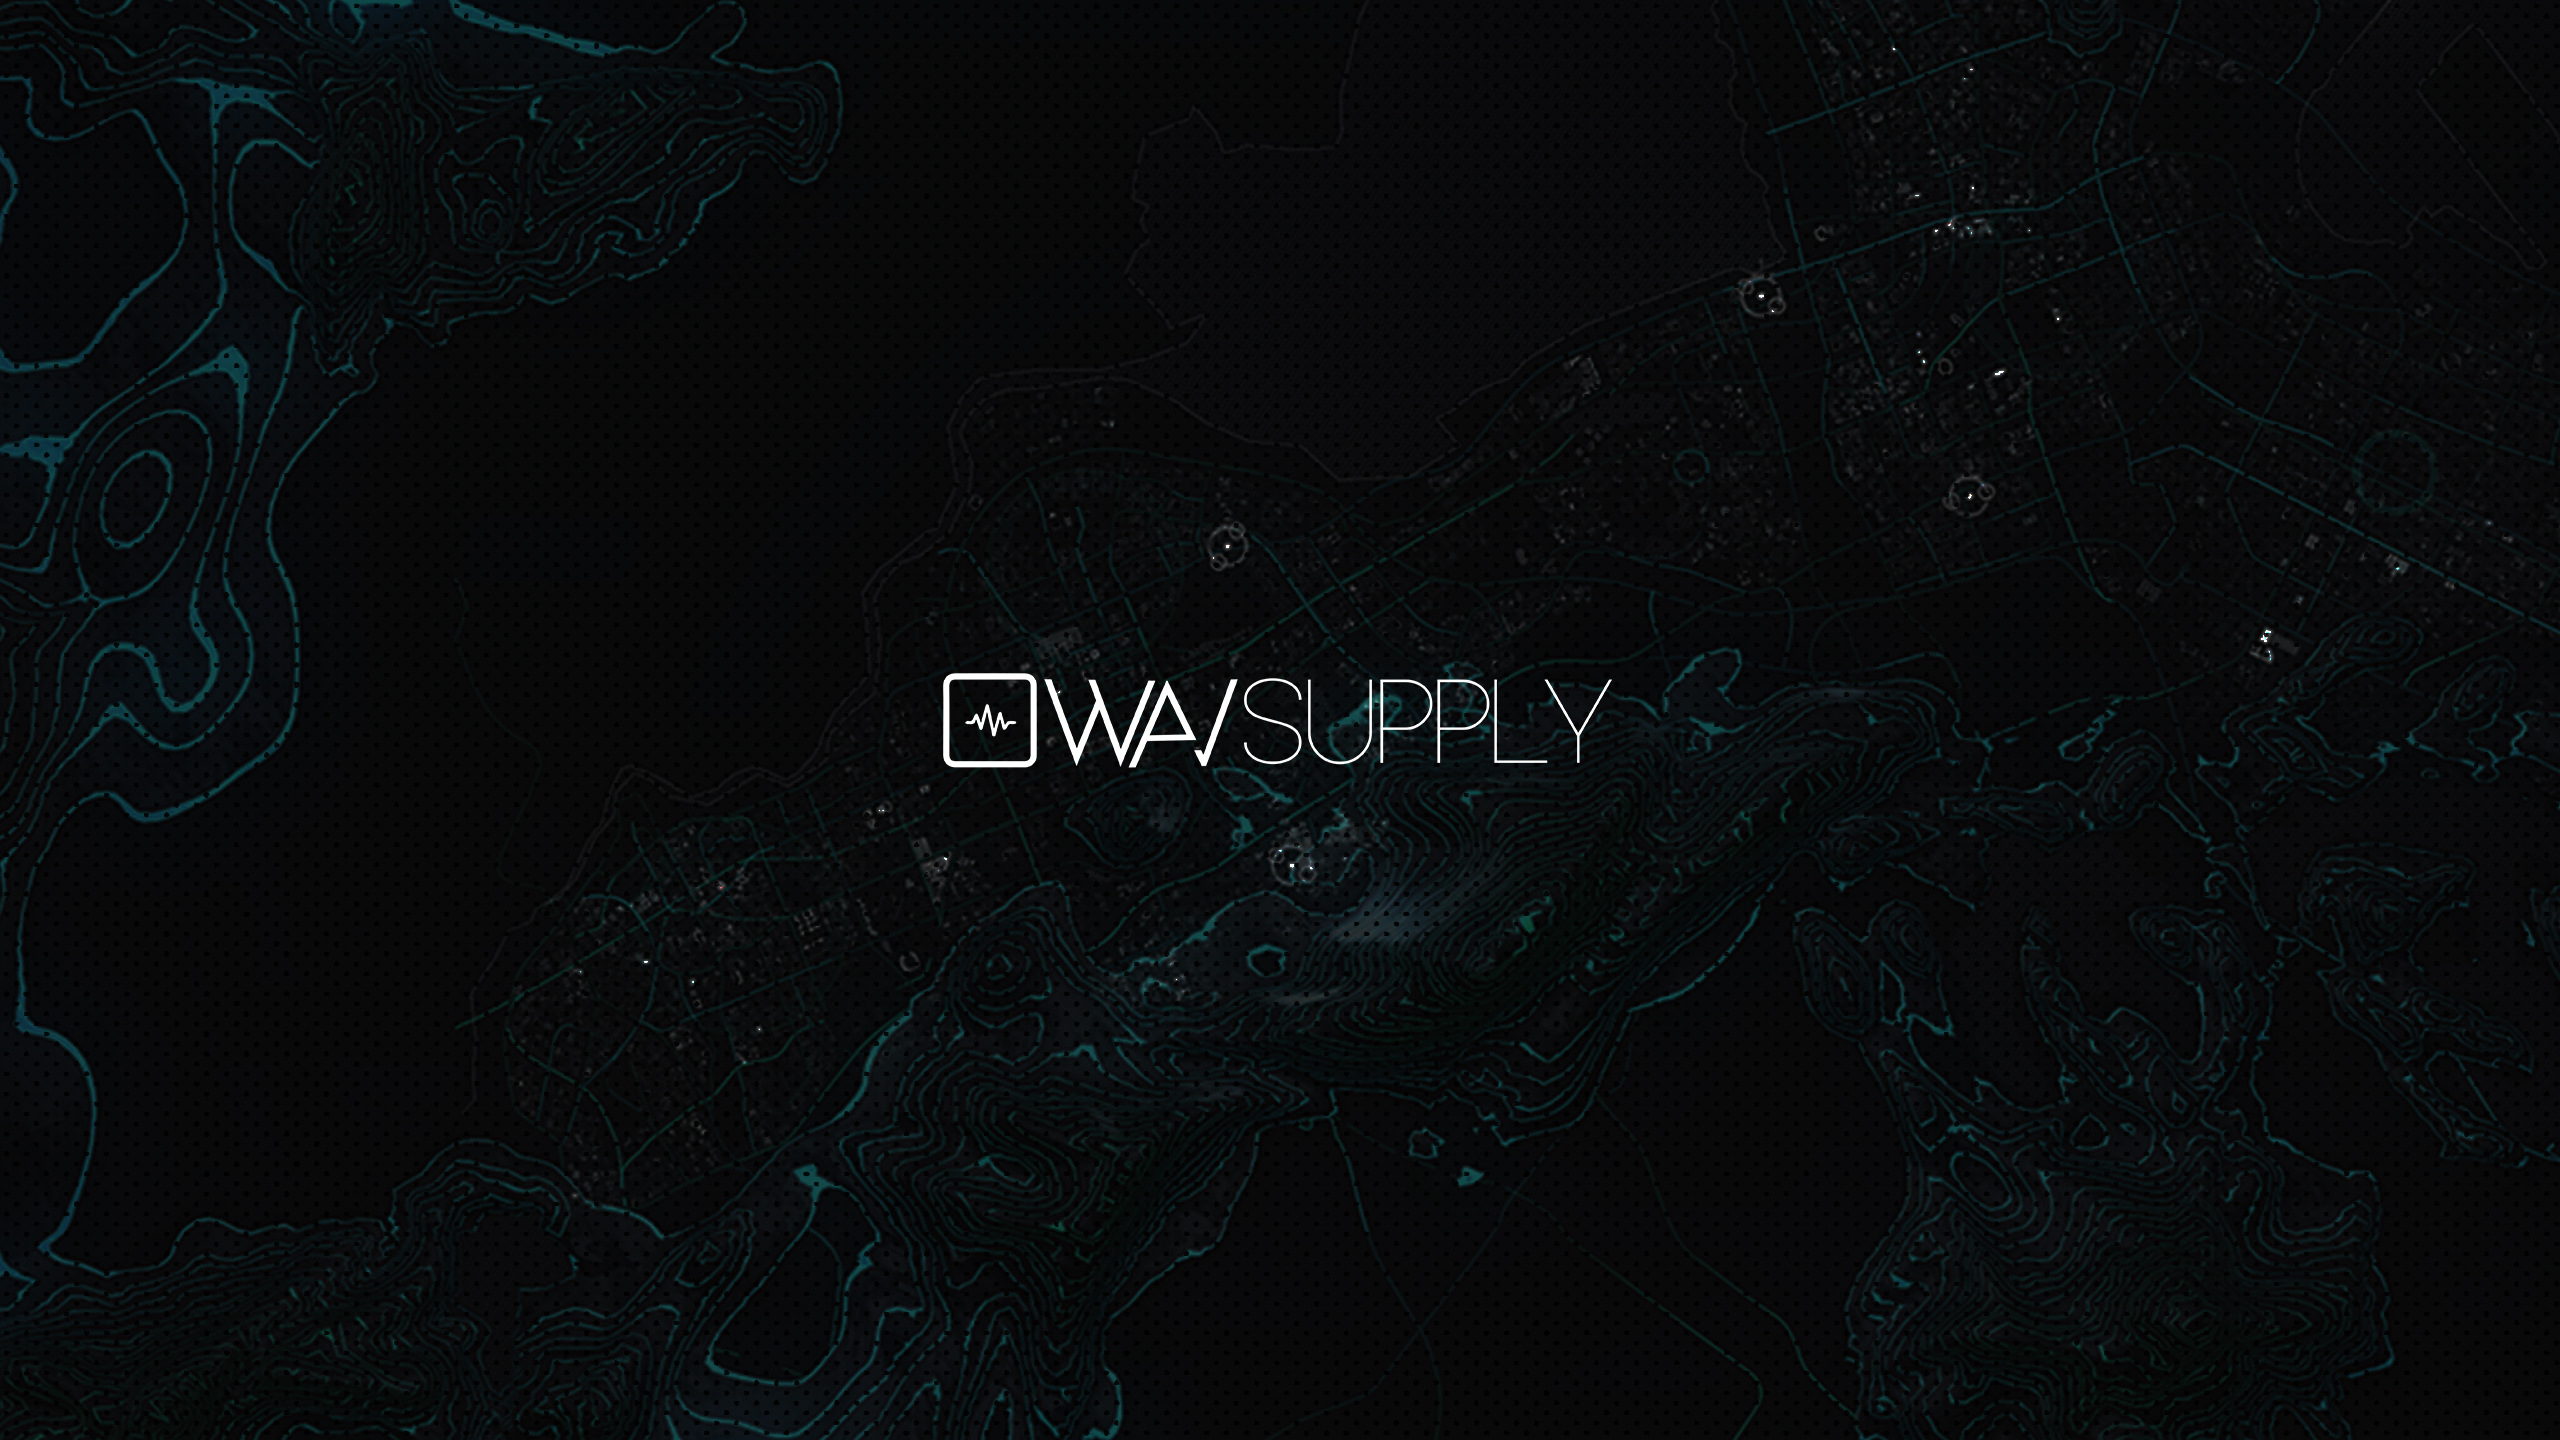 WavSupply – The Best Kits By The Best Producers